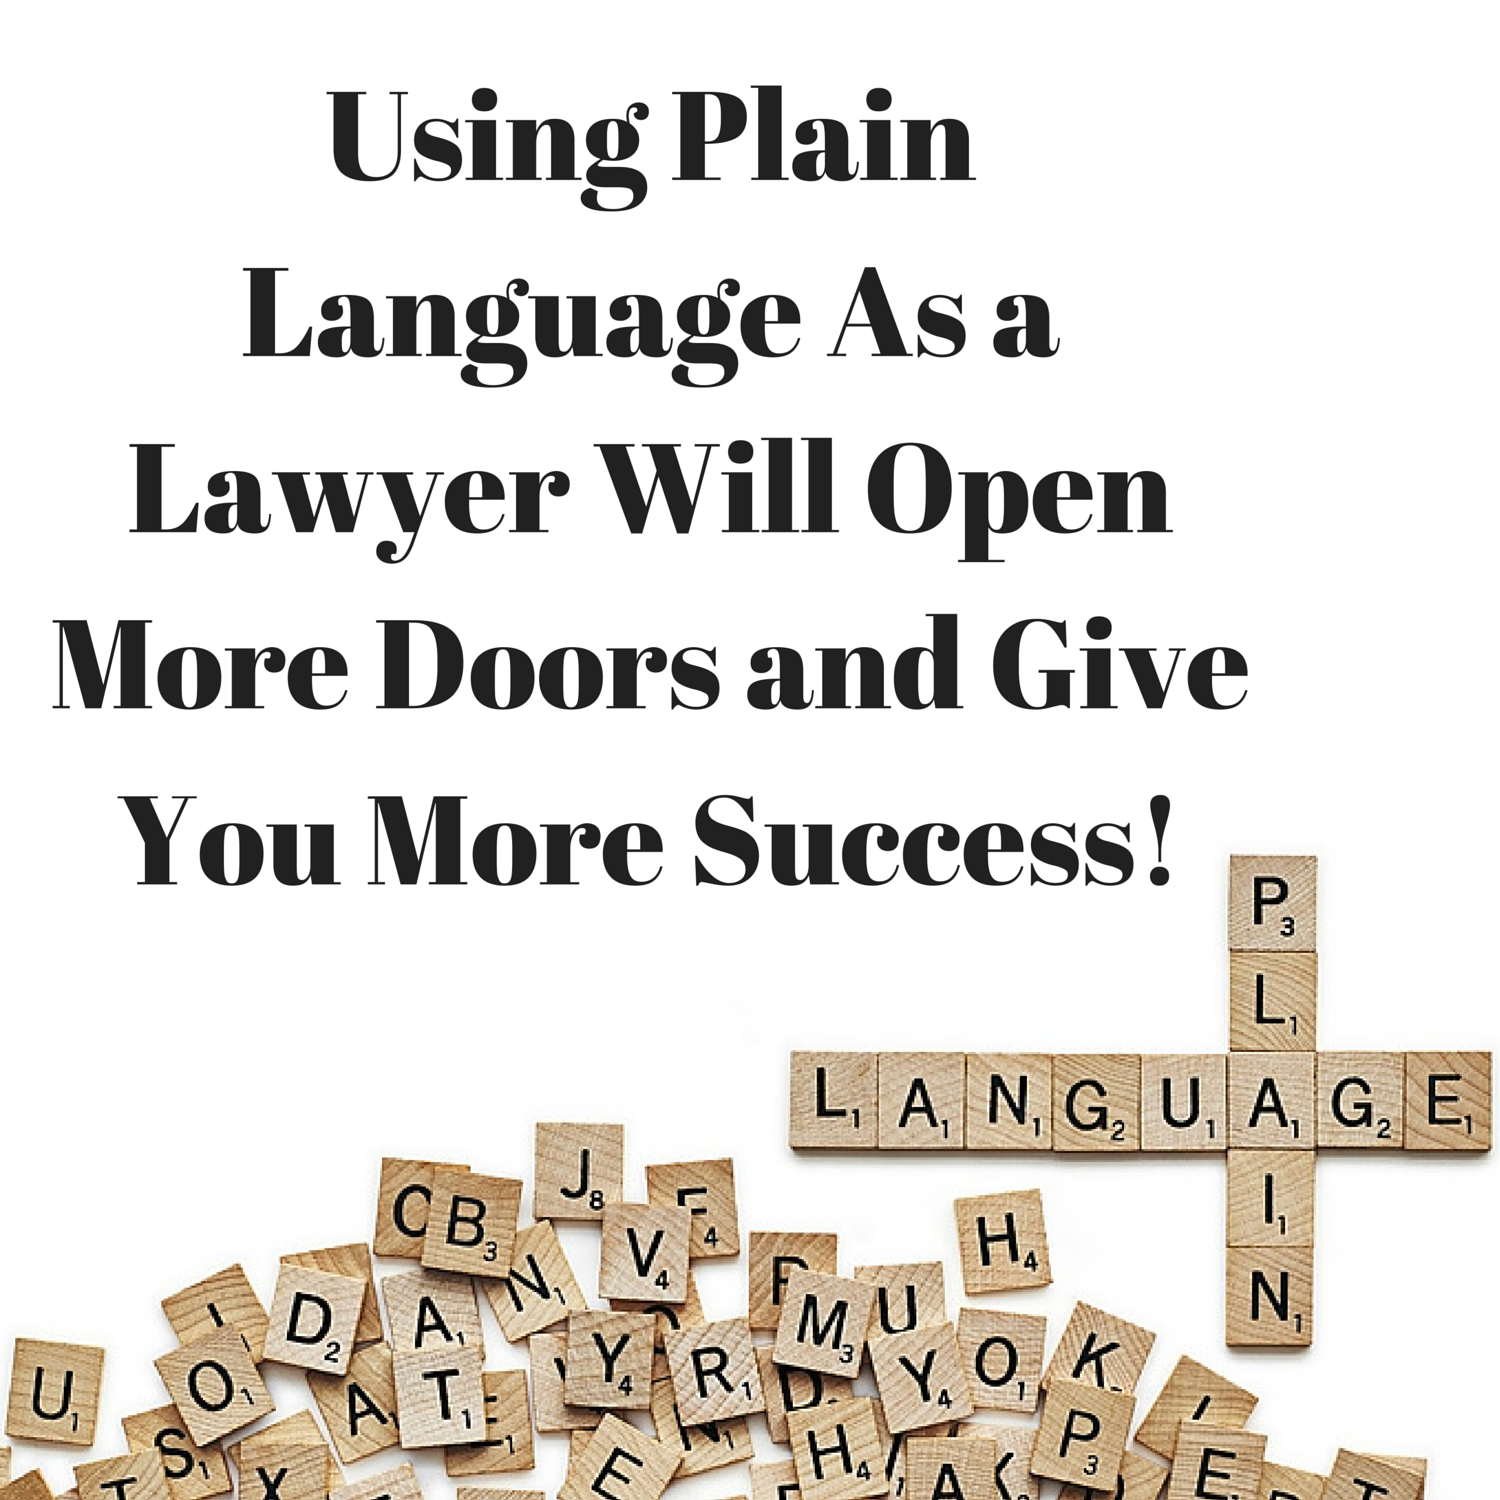 Law School Insider: Using Plain Language As a Lawyer Will Open More Doors and Give You More Success! - EP47